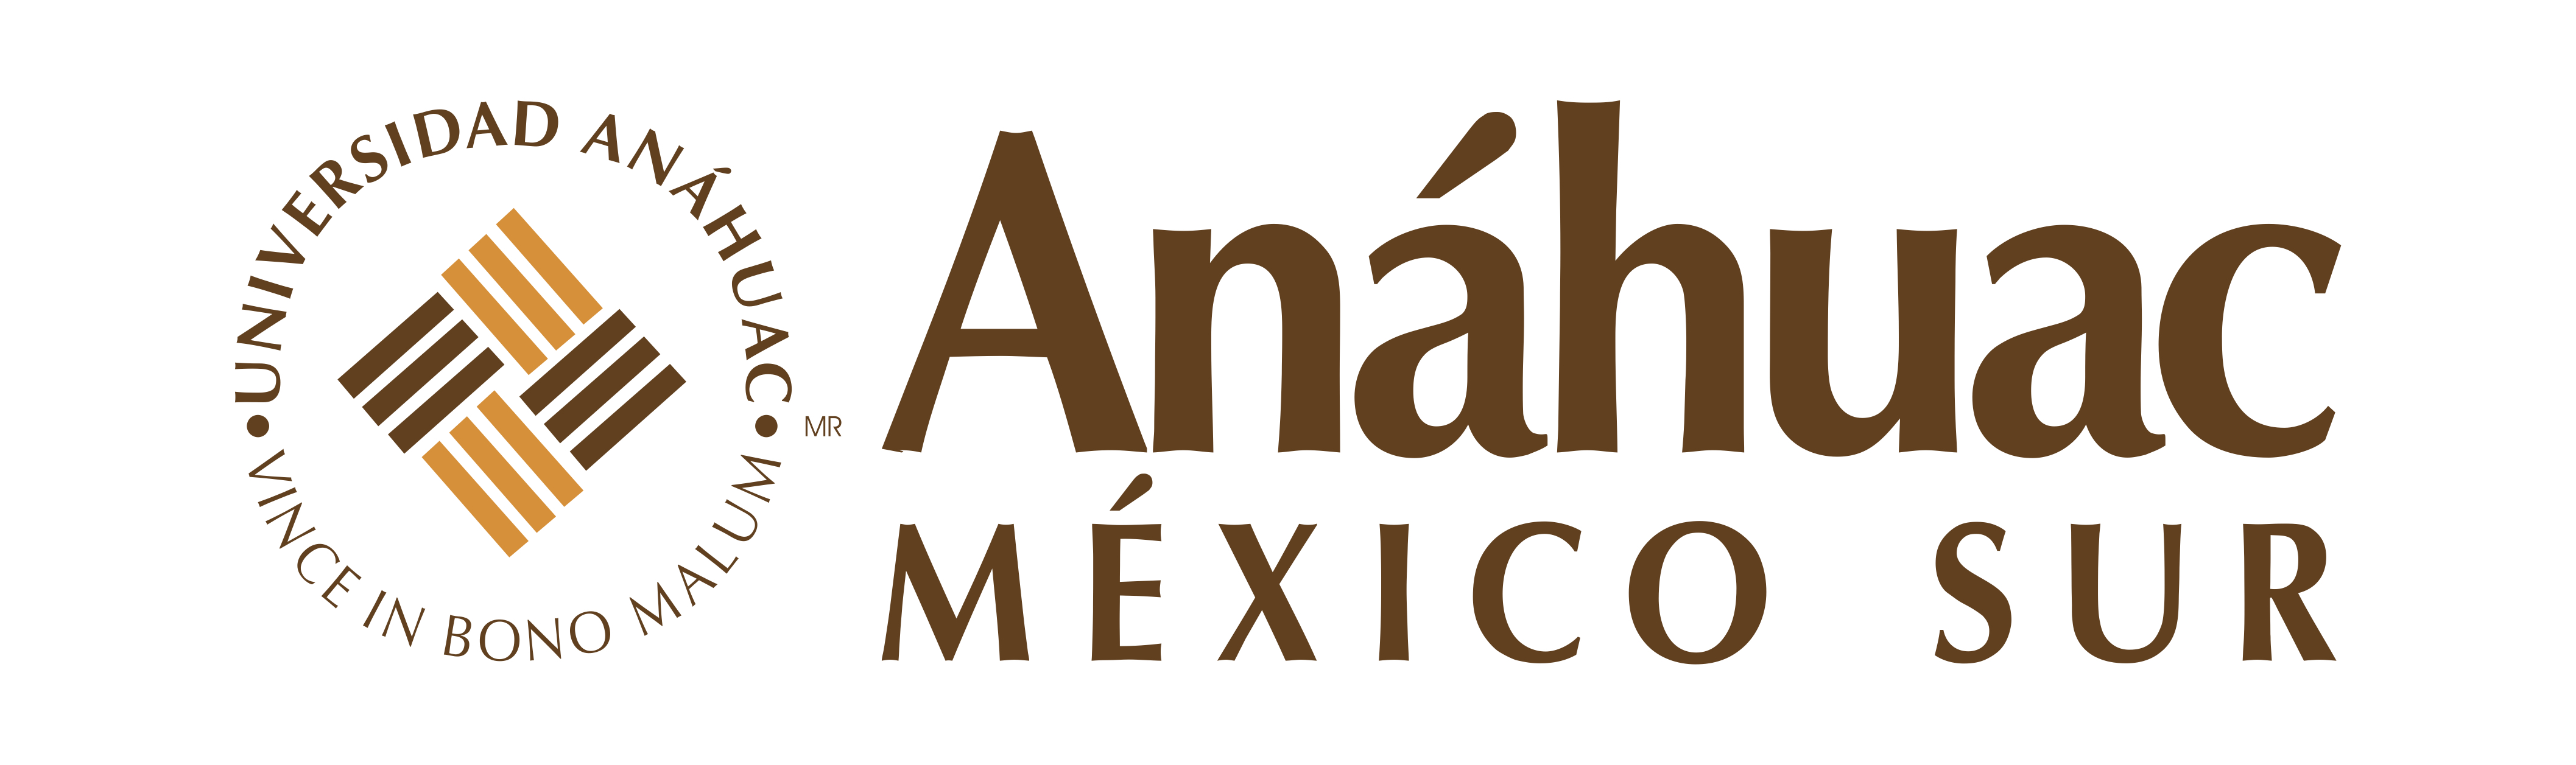 anahuac personals Single women in anahuac, tx welcome to datehookupcom we're 100% free for everything, meet single women in anahuac todaydon't pay for a anahuac dating site, meet single women here for free.